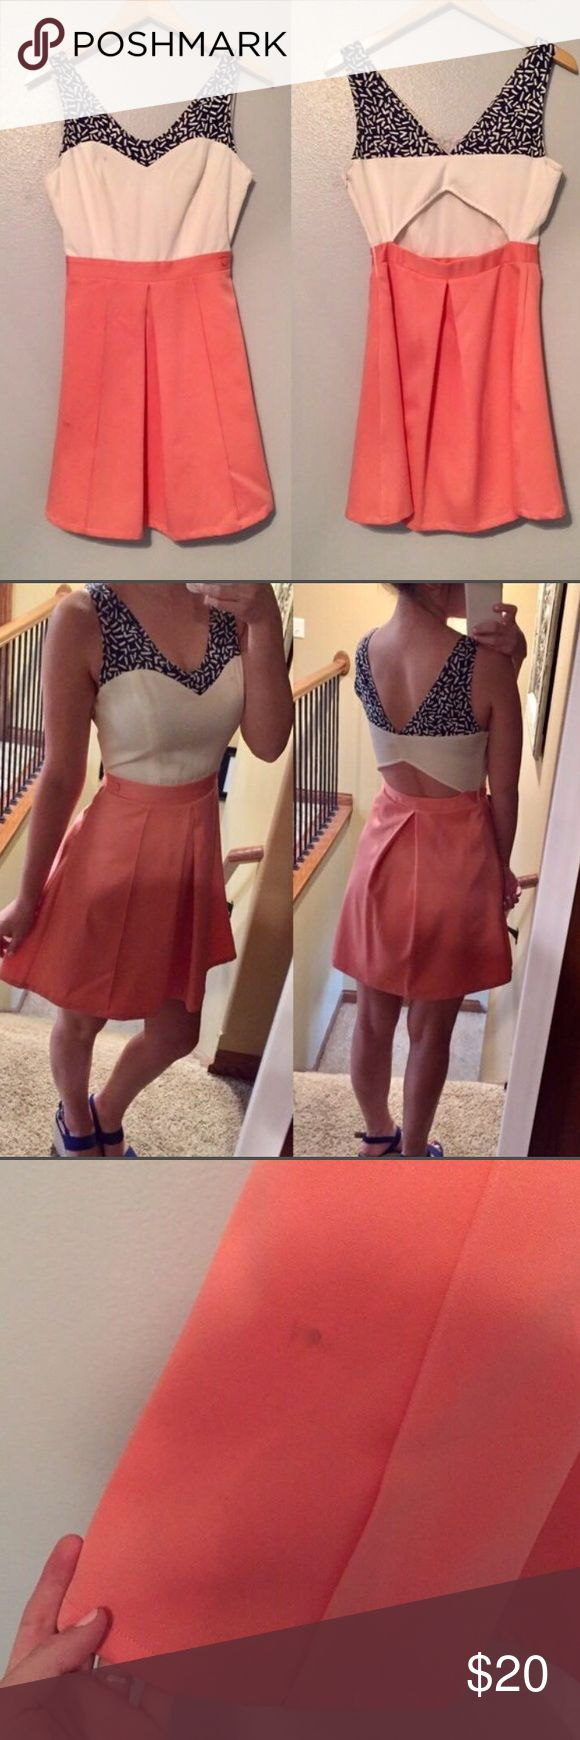 Apricot Lane Boutique Dress Please see third picture, small stain • Great condition • Cutout back • [Willing to trade] Francesca's Collections Dresses